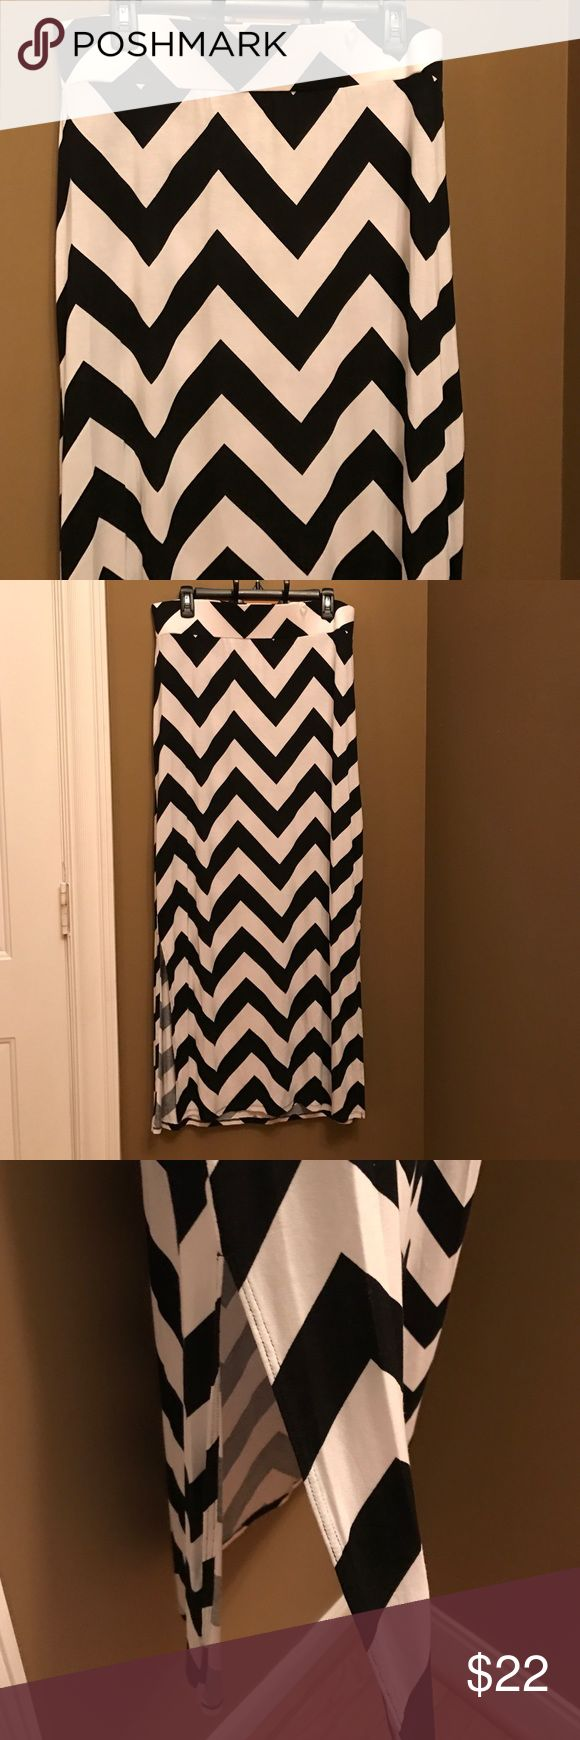 "NWT black & white chevron skirt a.n.a. Black and white chevron maxi that is 42.5"" long. The waist is a wide elastic band that is 17"". a.n.a Skirts Maxi"